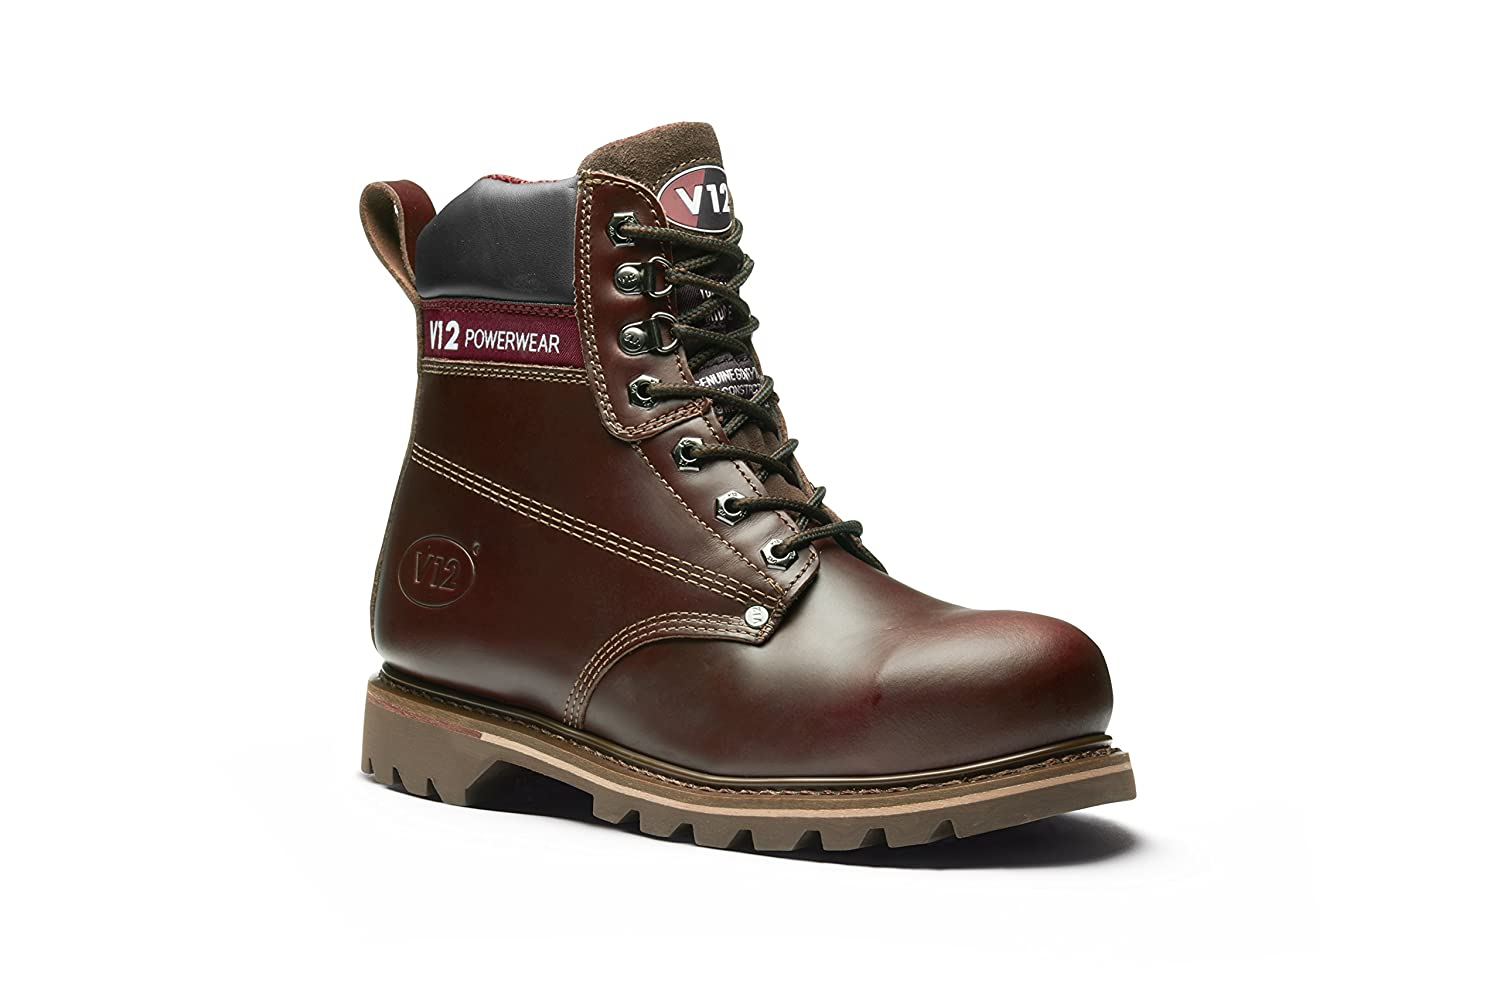 special sales new appearance many fashionable V12 Boulder Safety Boots - 5 UK/Brown